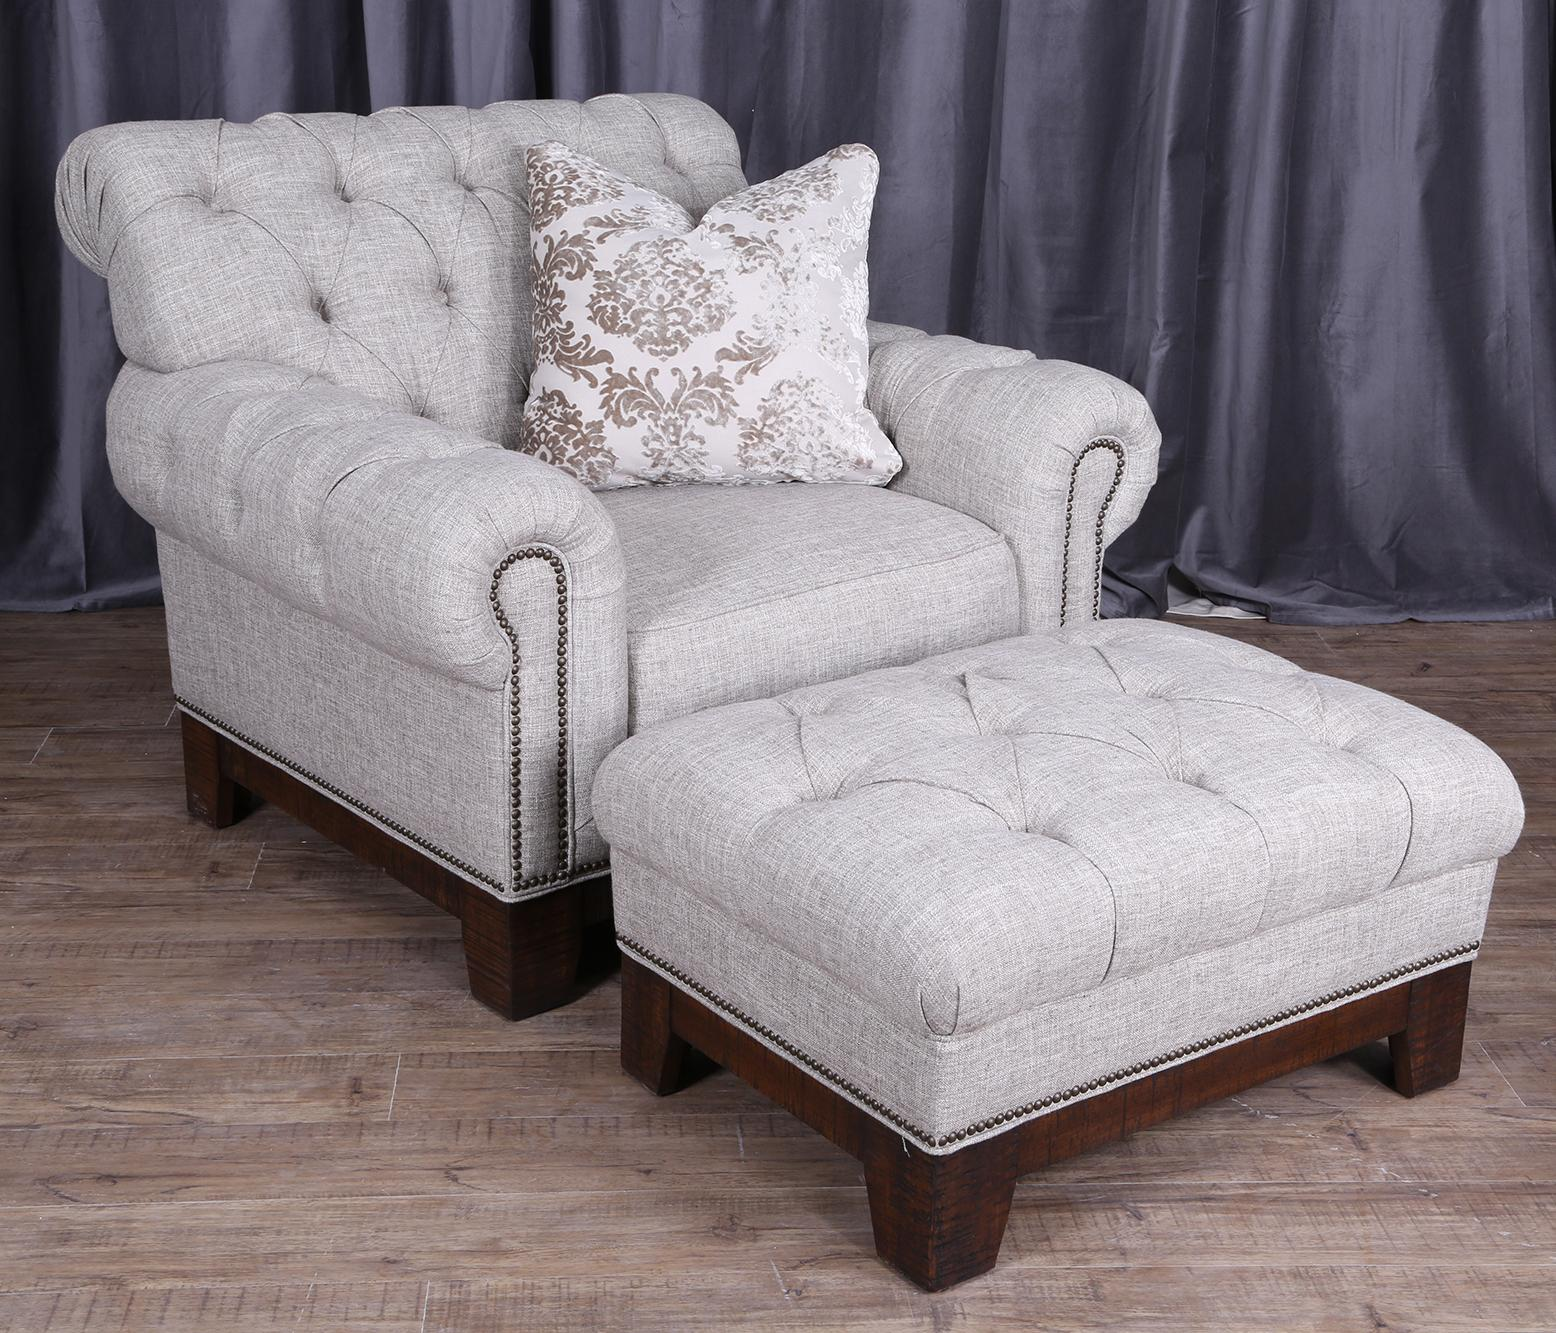 Fabulous Magnussen Home Caitlyn Transitional Button-Tufted Chair and  HZ73